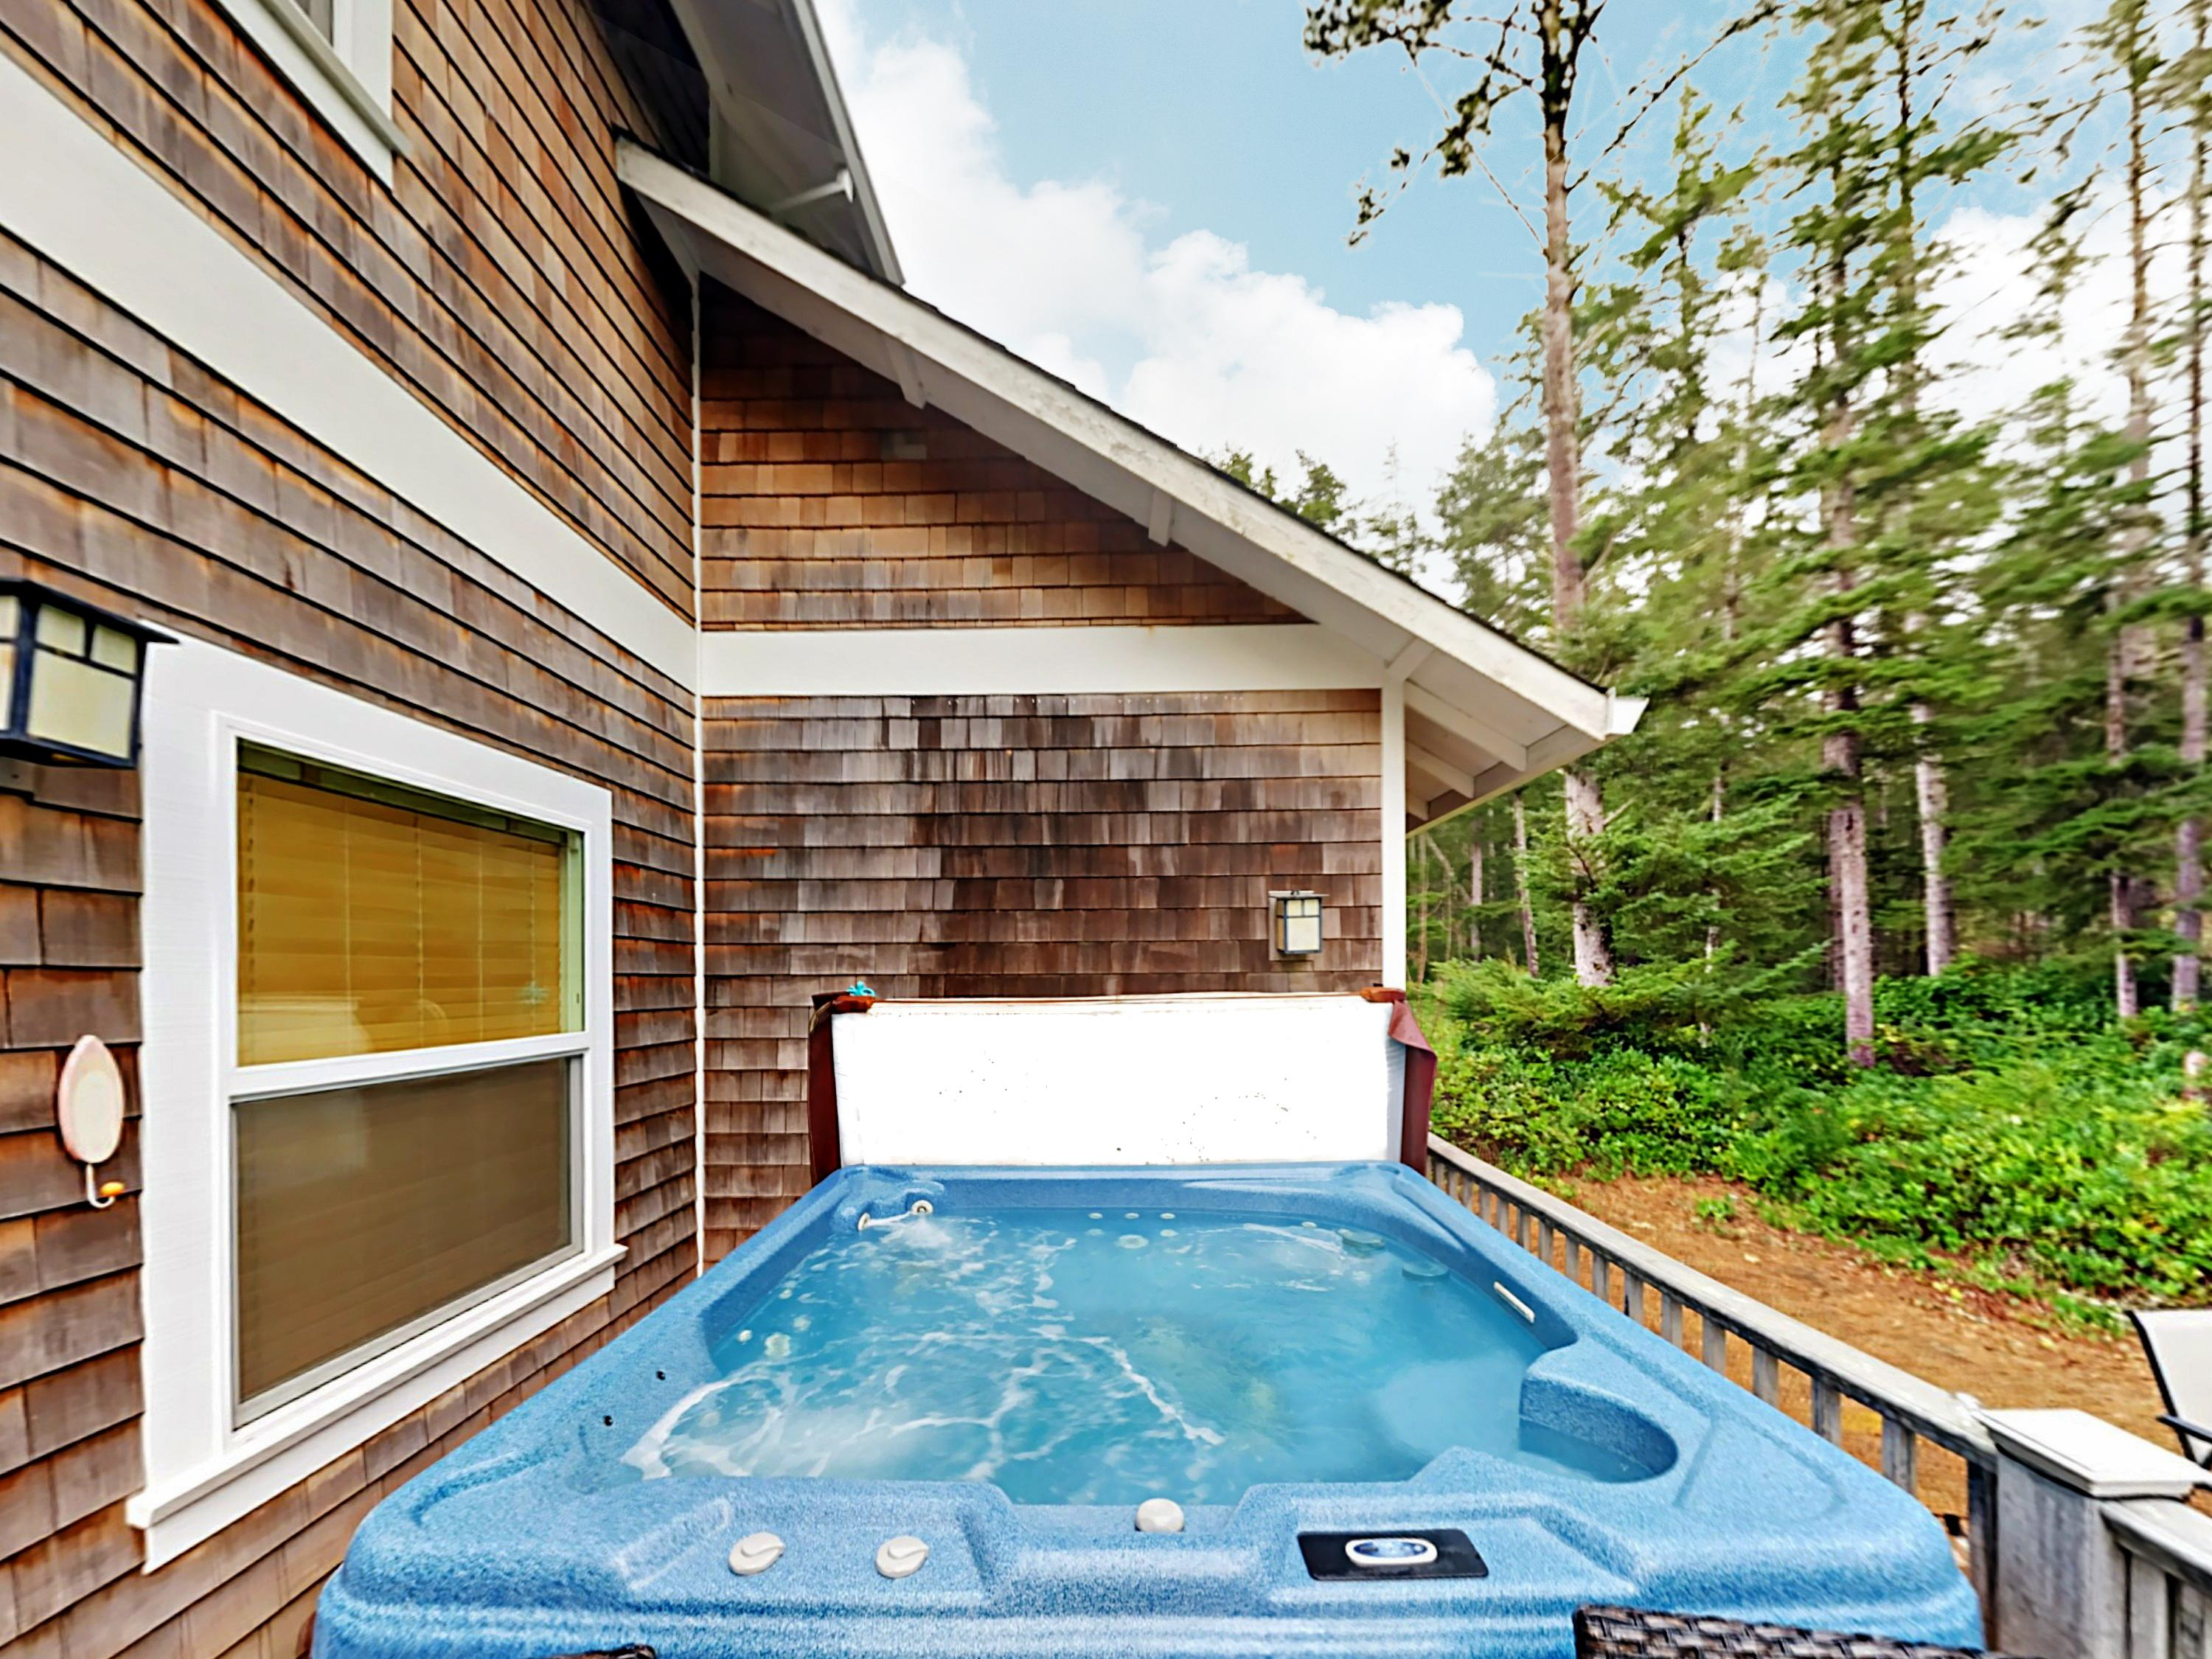 Affectionately known as Nirvana in Nedonna Beach, this beautiful craftsman home boasts a private hot tub.